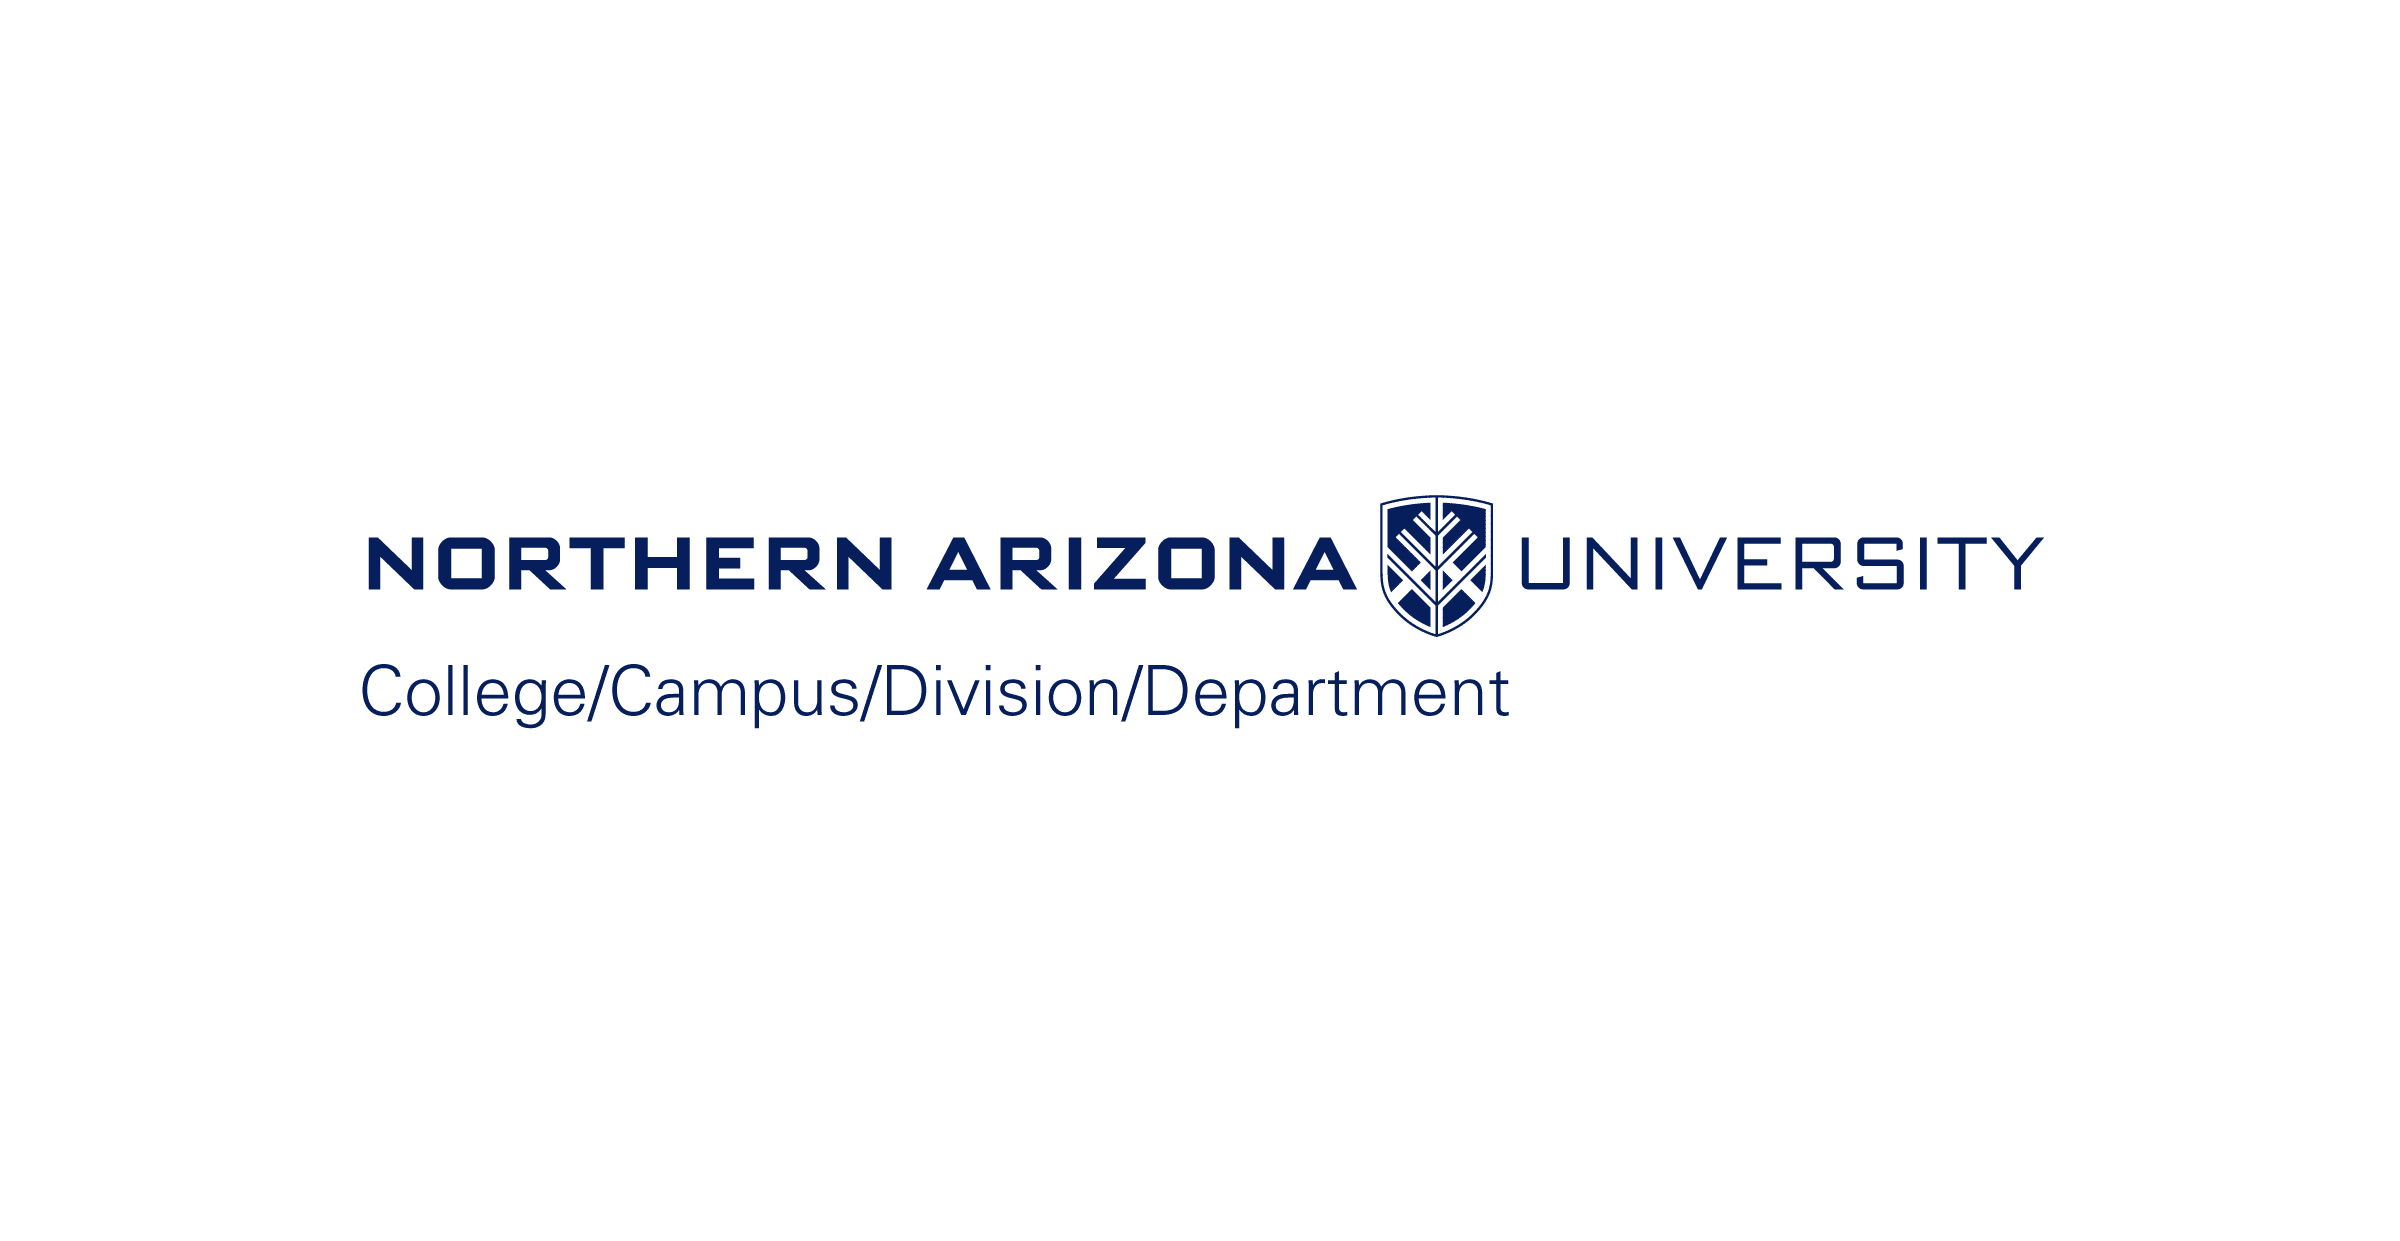 "The Northern Arizona University horizontal college, campus, division, and non-academic department logo. The logo stacked. On the top, the N A U logo is displayed horizontally with the N A U shield appearing between ""Arizona"" and ""University"". On the bottom, the college, campus, division, and department text are separated by forward slashes and arranged horizontally. The text is blue over a white background."